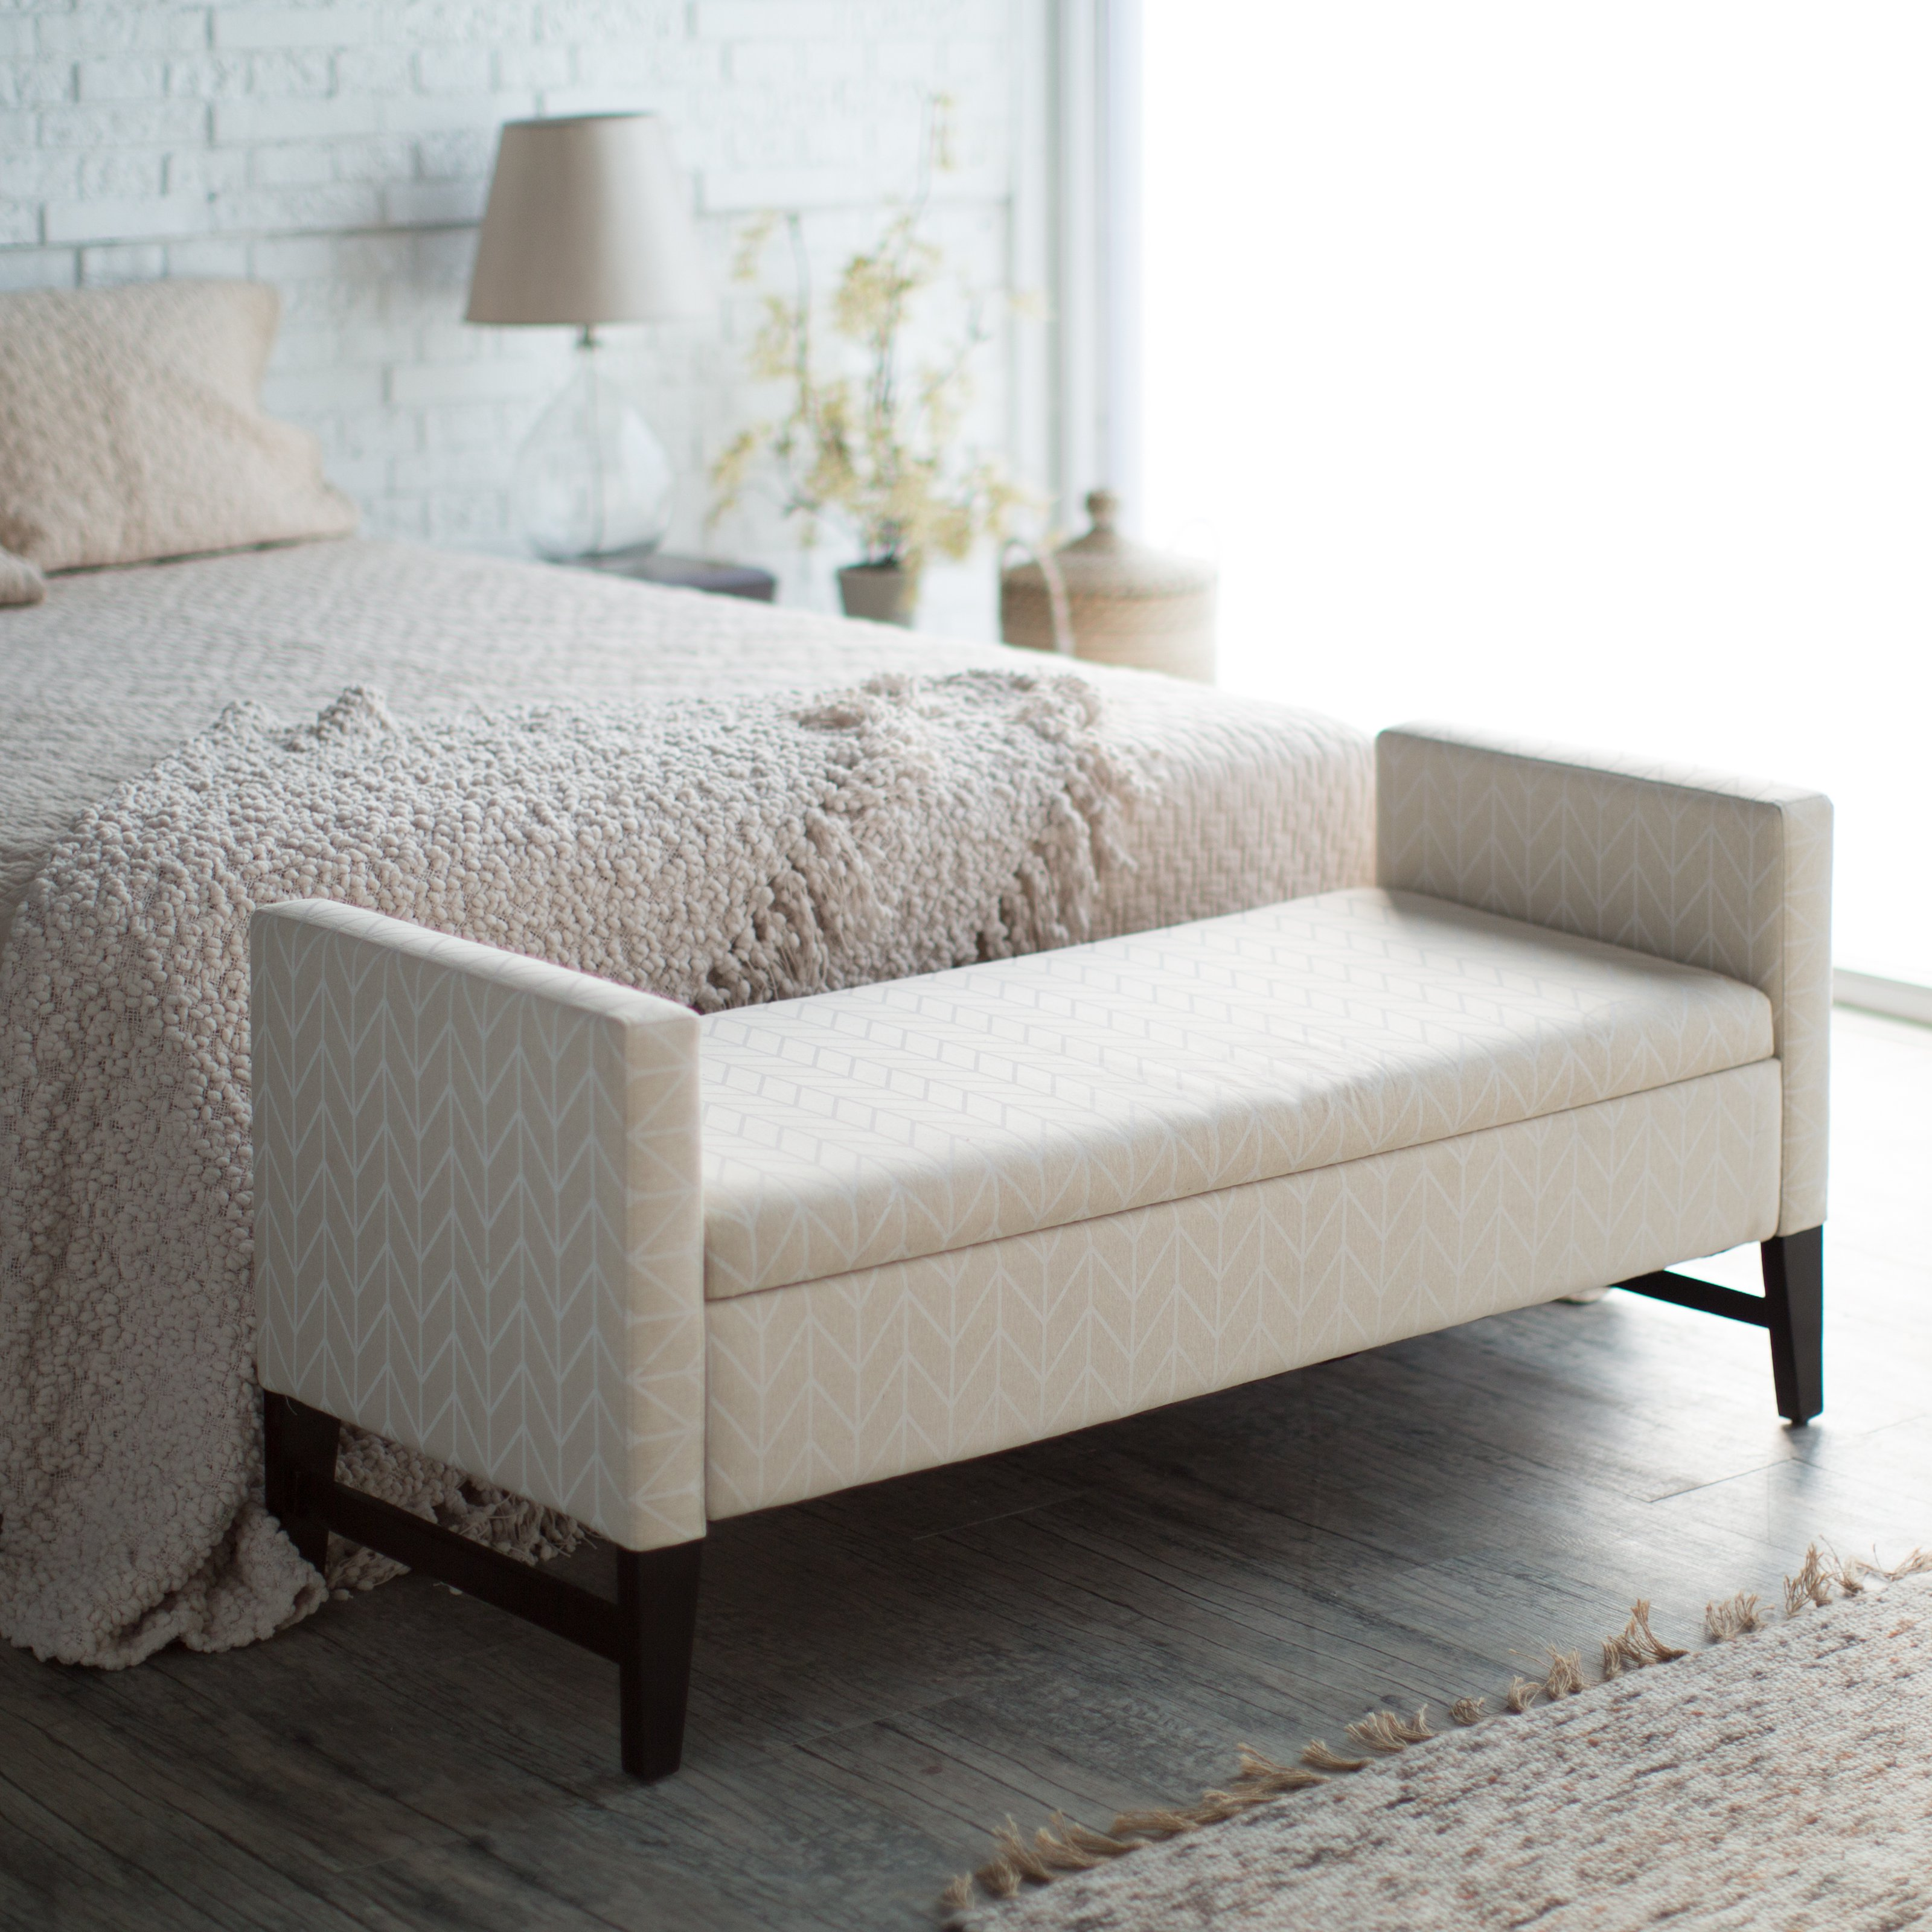 chairs for the end of your bed chair upside down on table add an extra seating or storage to bedroom with